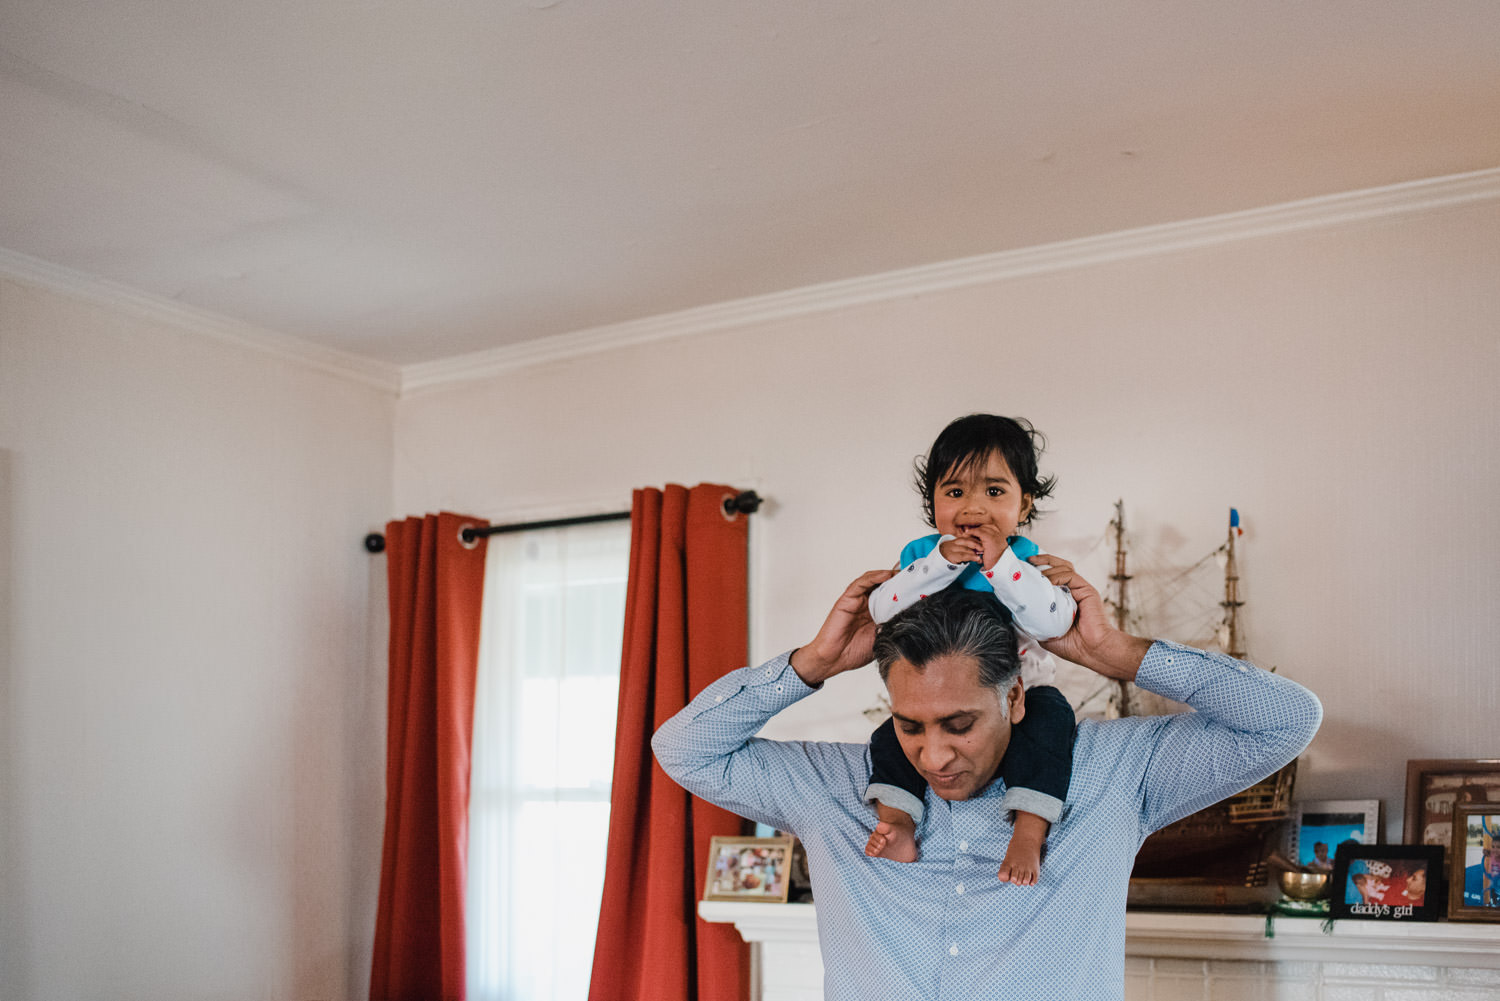 A father holds his baby son on his shoulders.